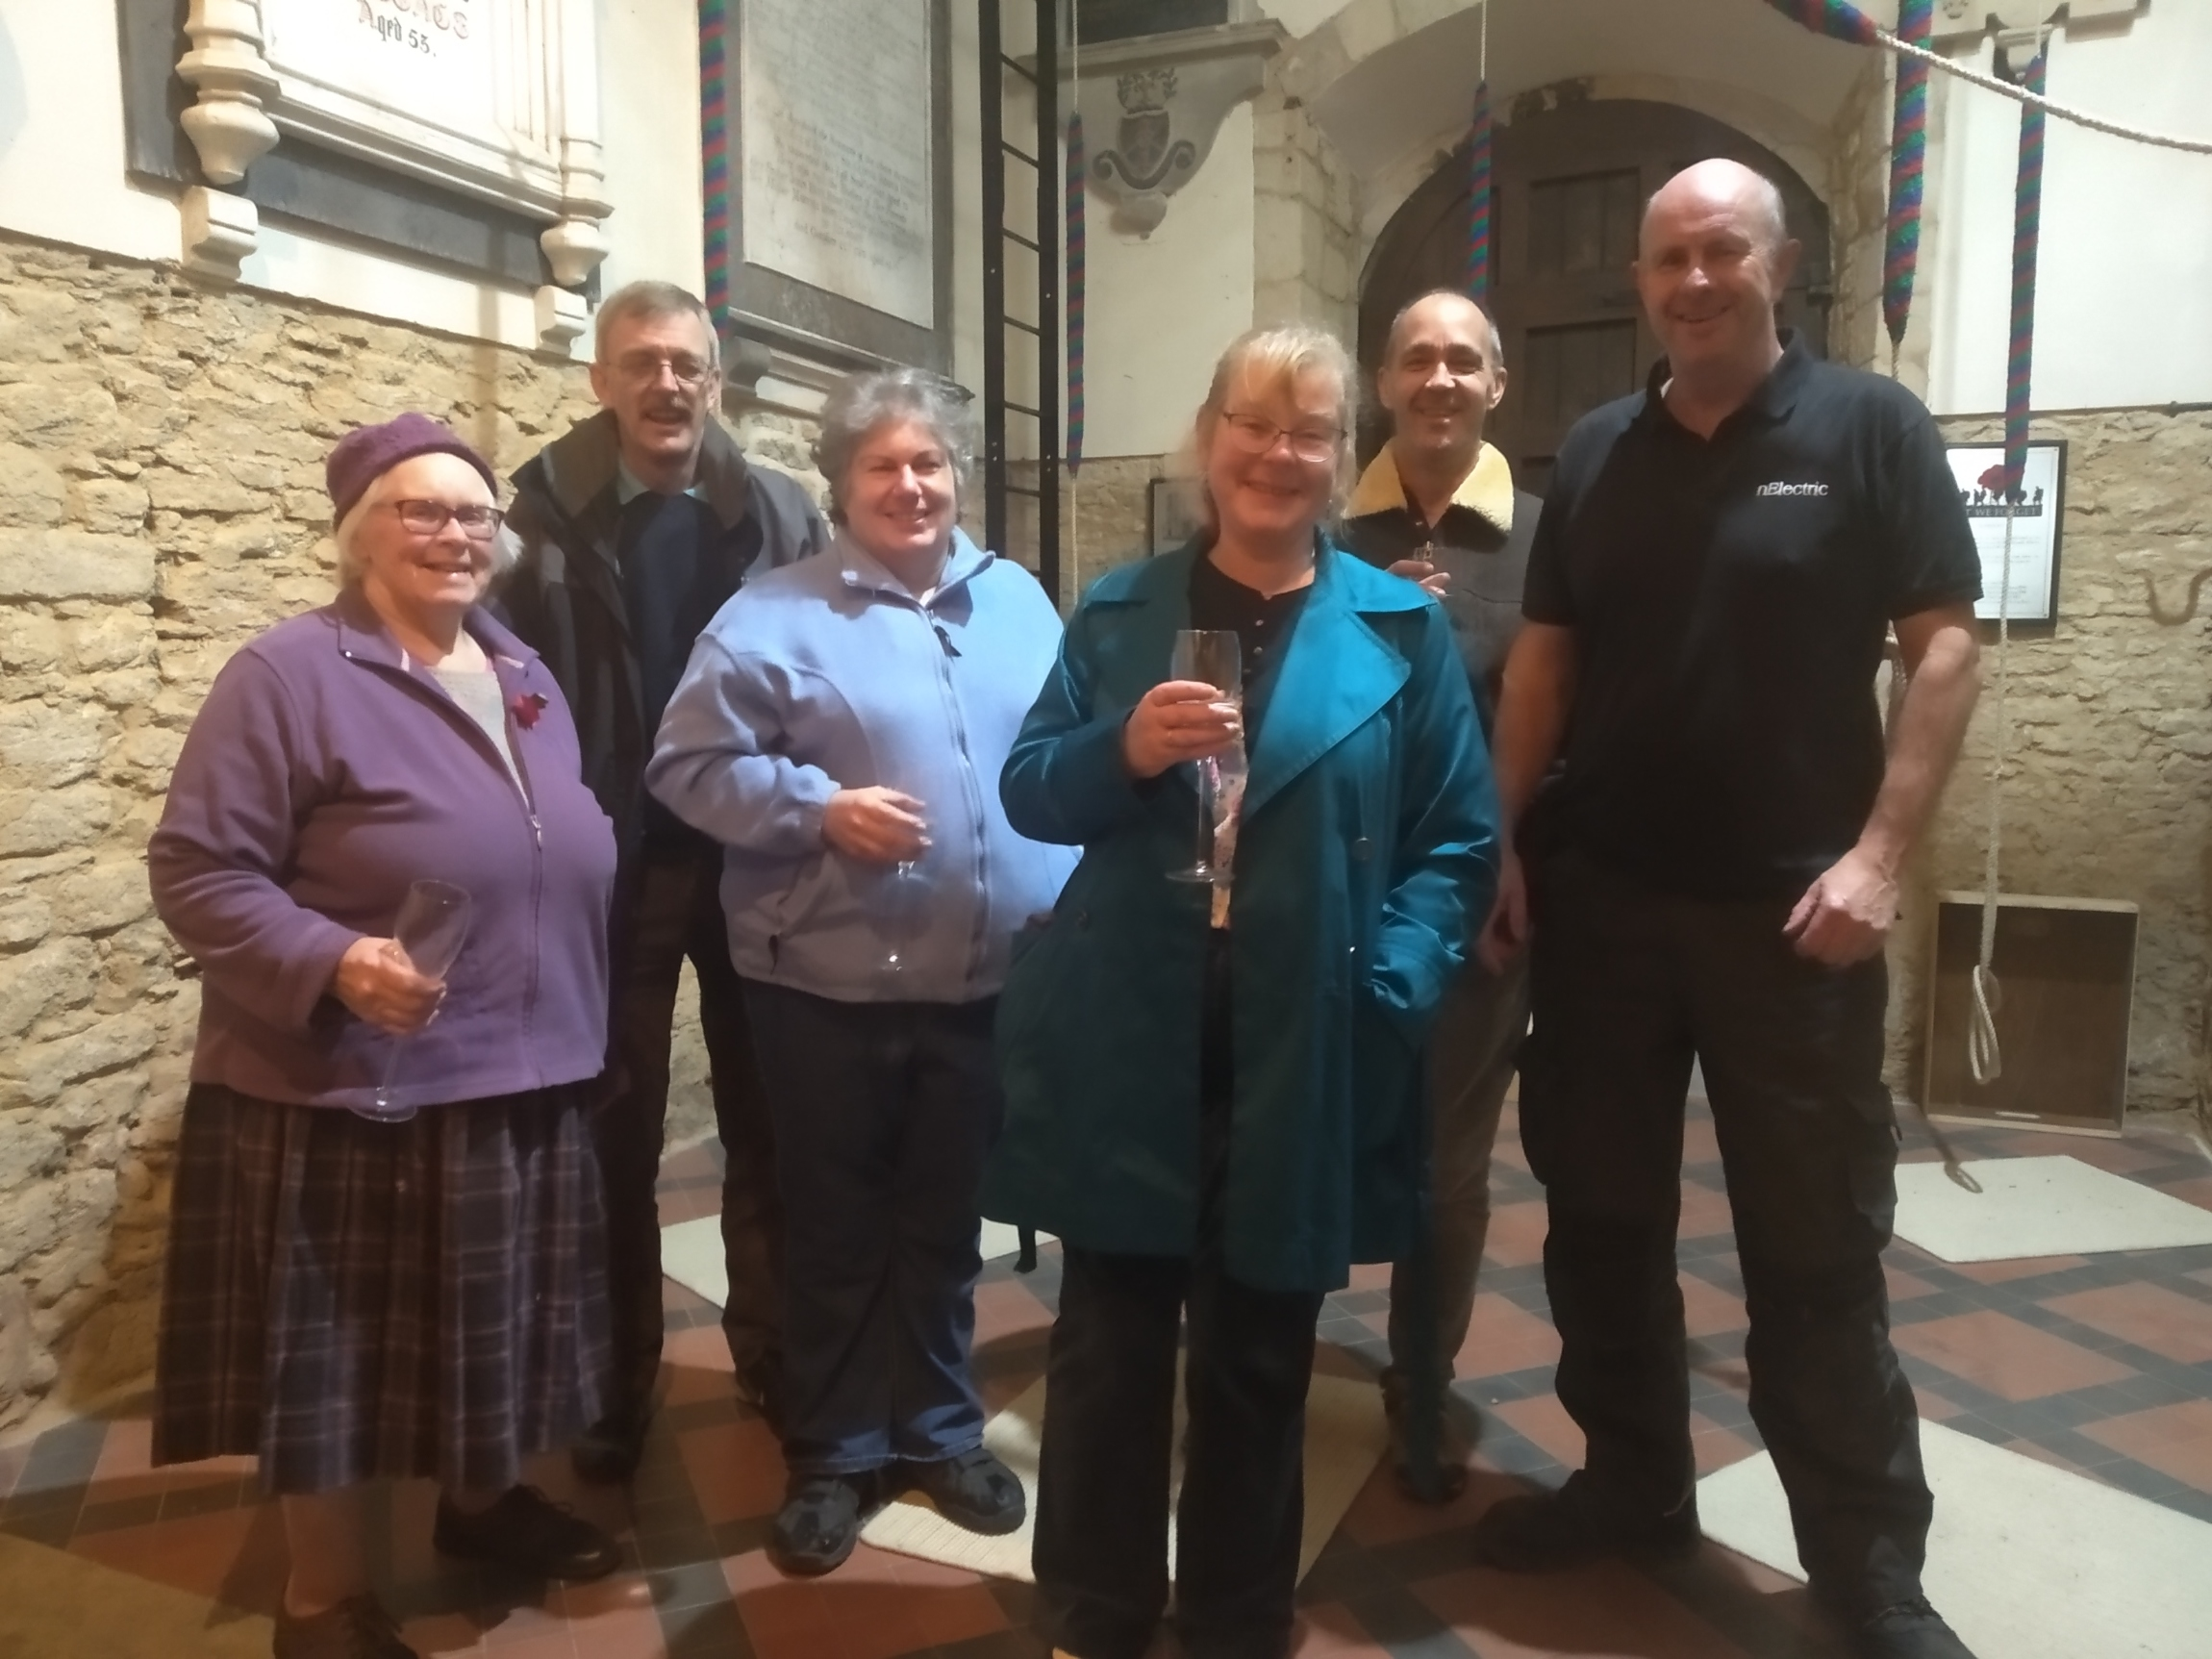 Marion Robinson, Iain Hayden, Angela Whiteway, Sue Marsden, Steve Millington and Nick Elks enjoying a glass of fizz to celebrate Angela's first peal, the first peal on the recently augmented bells and Nick's birthday